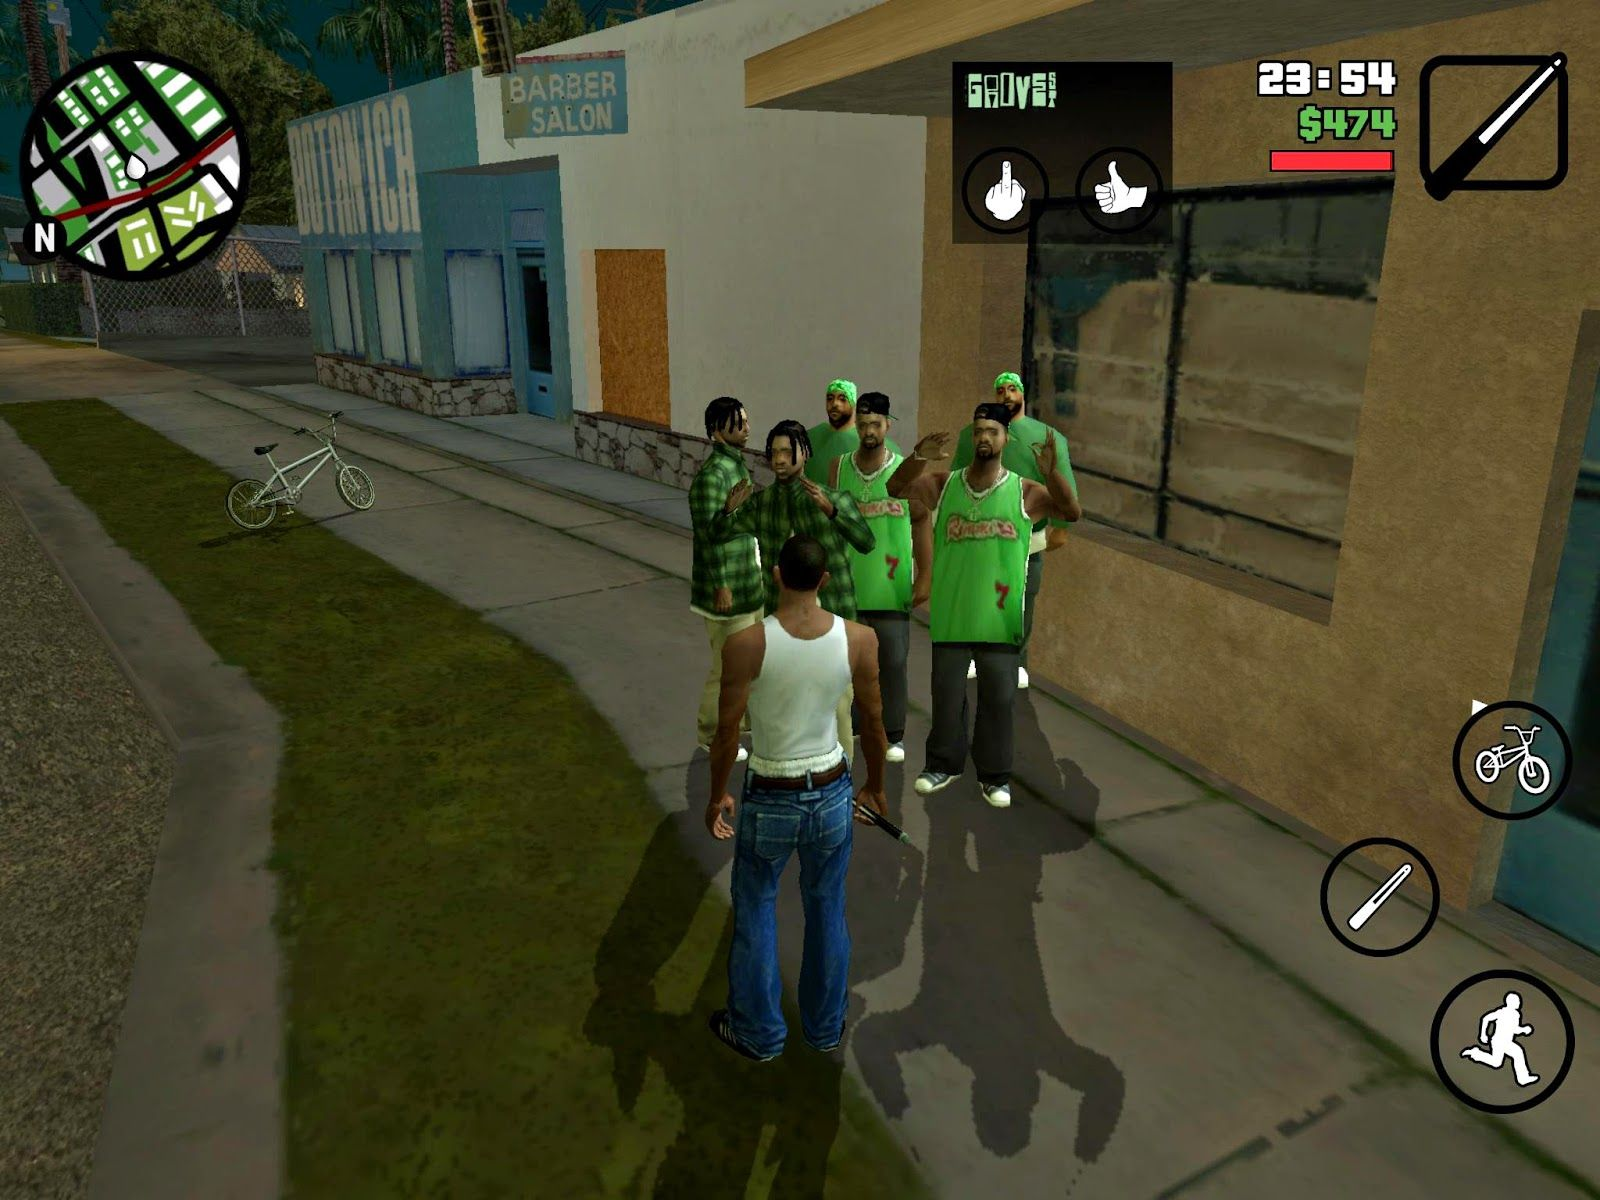 gta san andreas v1.08 android apk + data hack mod download